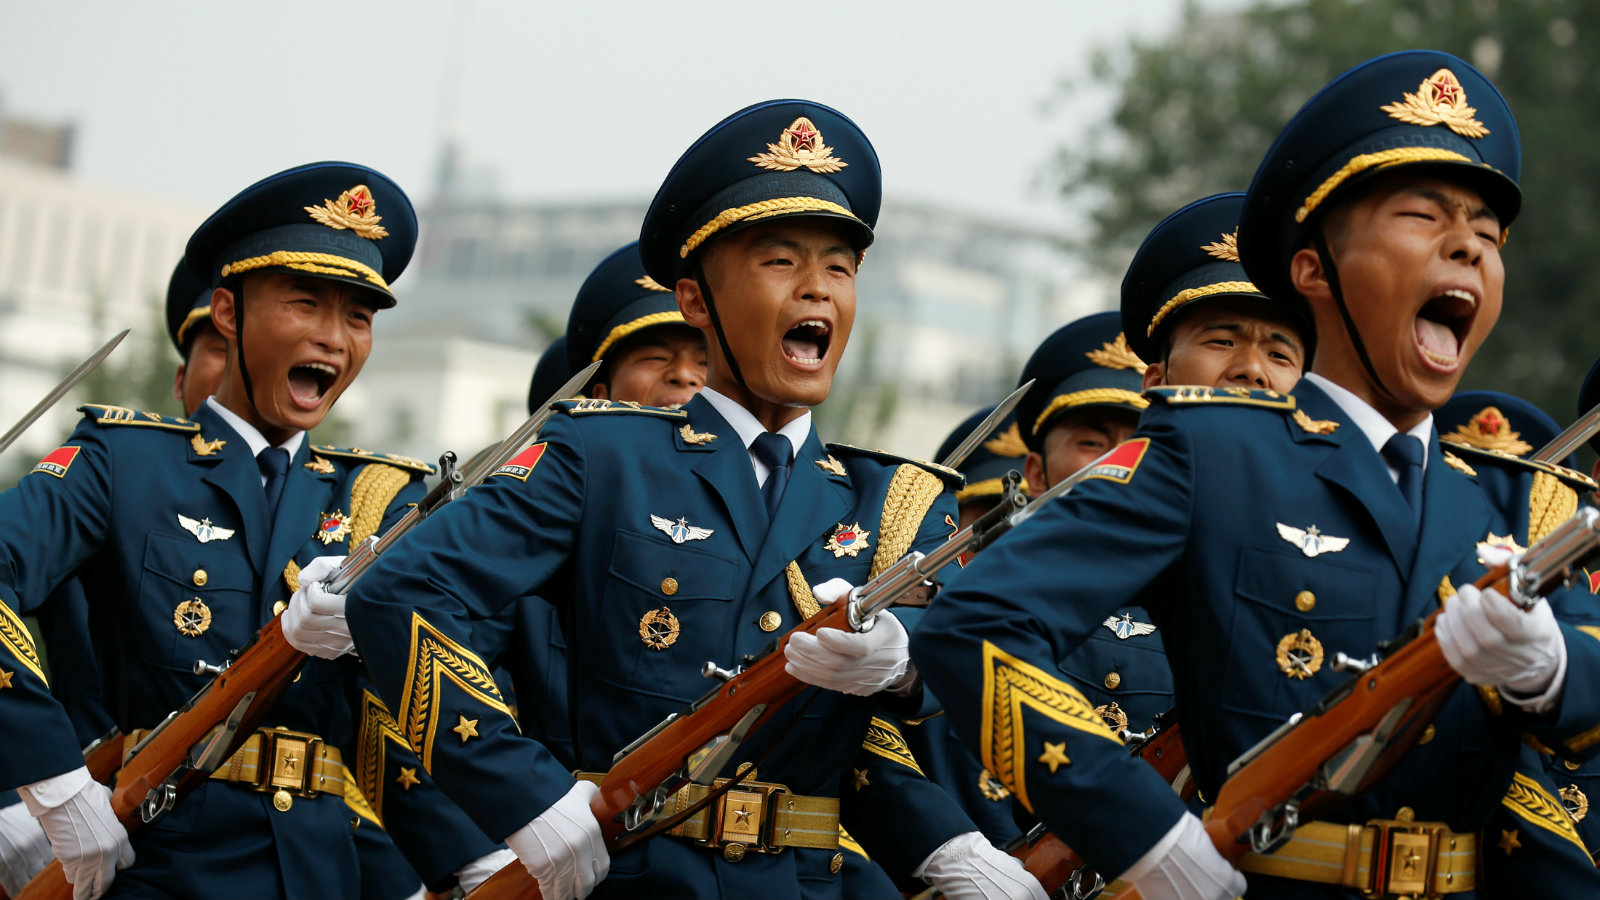 Marching honour guards shout as Chairman of U.S. Joint Chiefs of Staff Joseph Dunford is welcomed by his Chinese counterpart, chief of the general staff of the Chinese People's Liberation Army Gen. Fang Fenghui, during a welcoming ceremony in Beijing, China August 15, 2017.